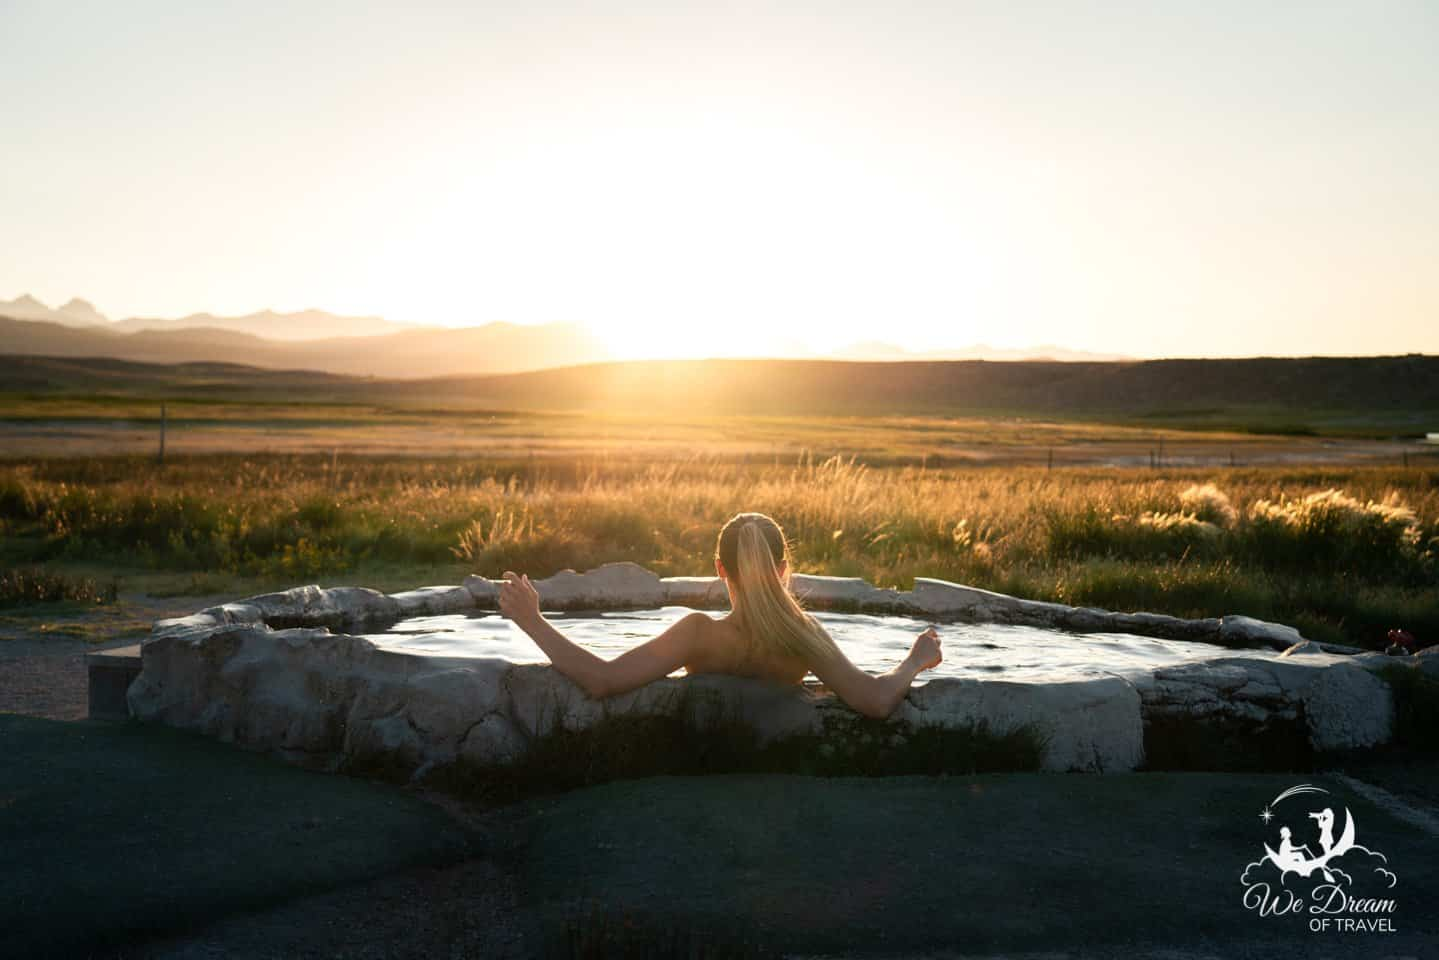 Enjoying the sunset from the scenic Hilltop Hot Spring, California.